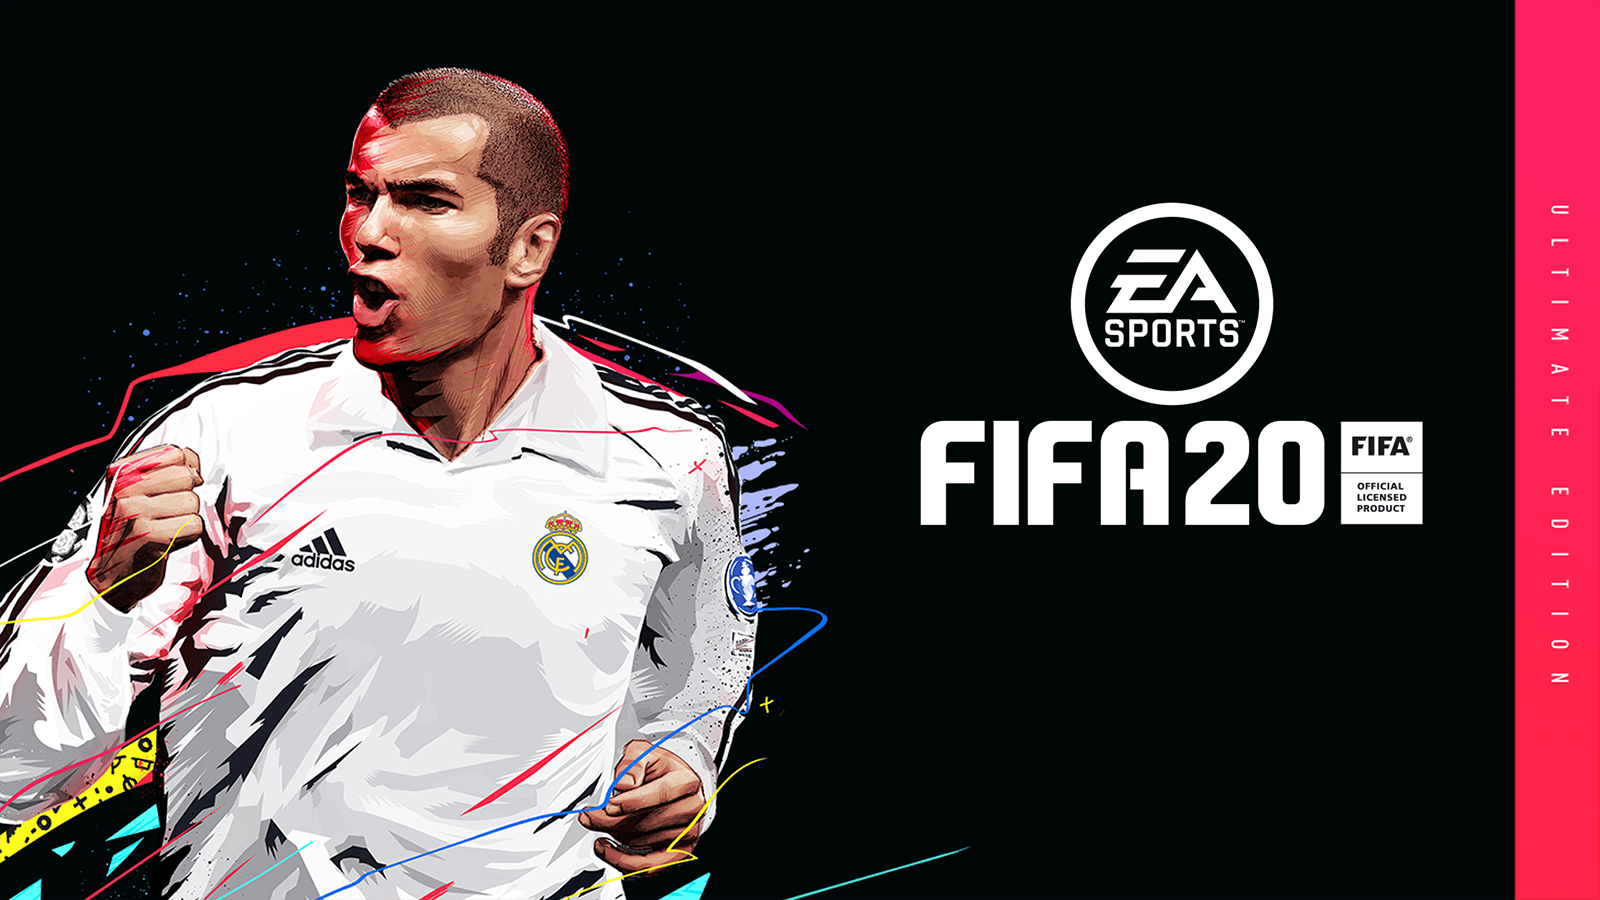 FIFA 20 ULTIMATE EDITION Free Download PC Game (Full Version)